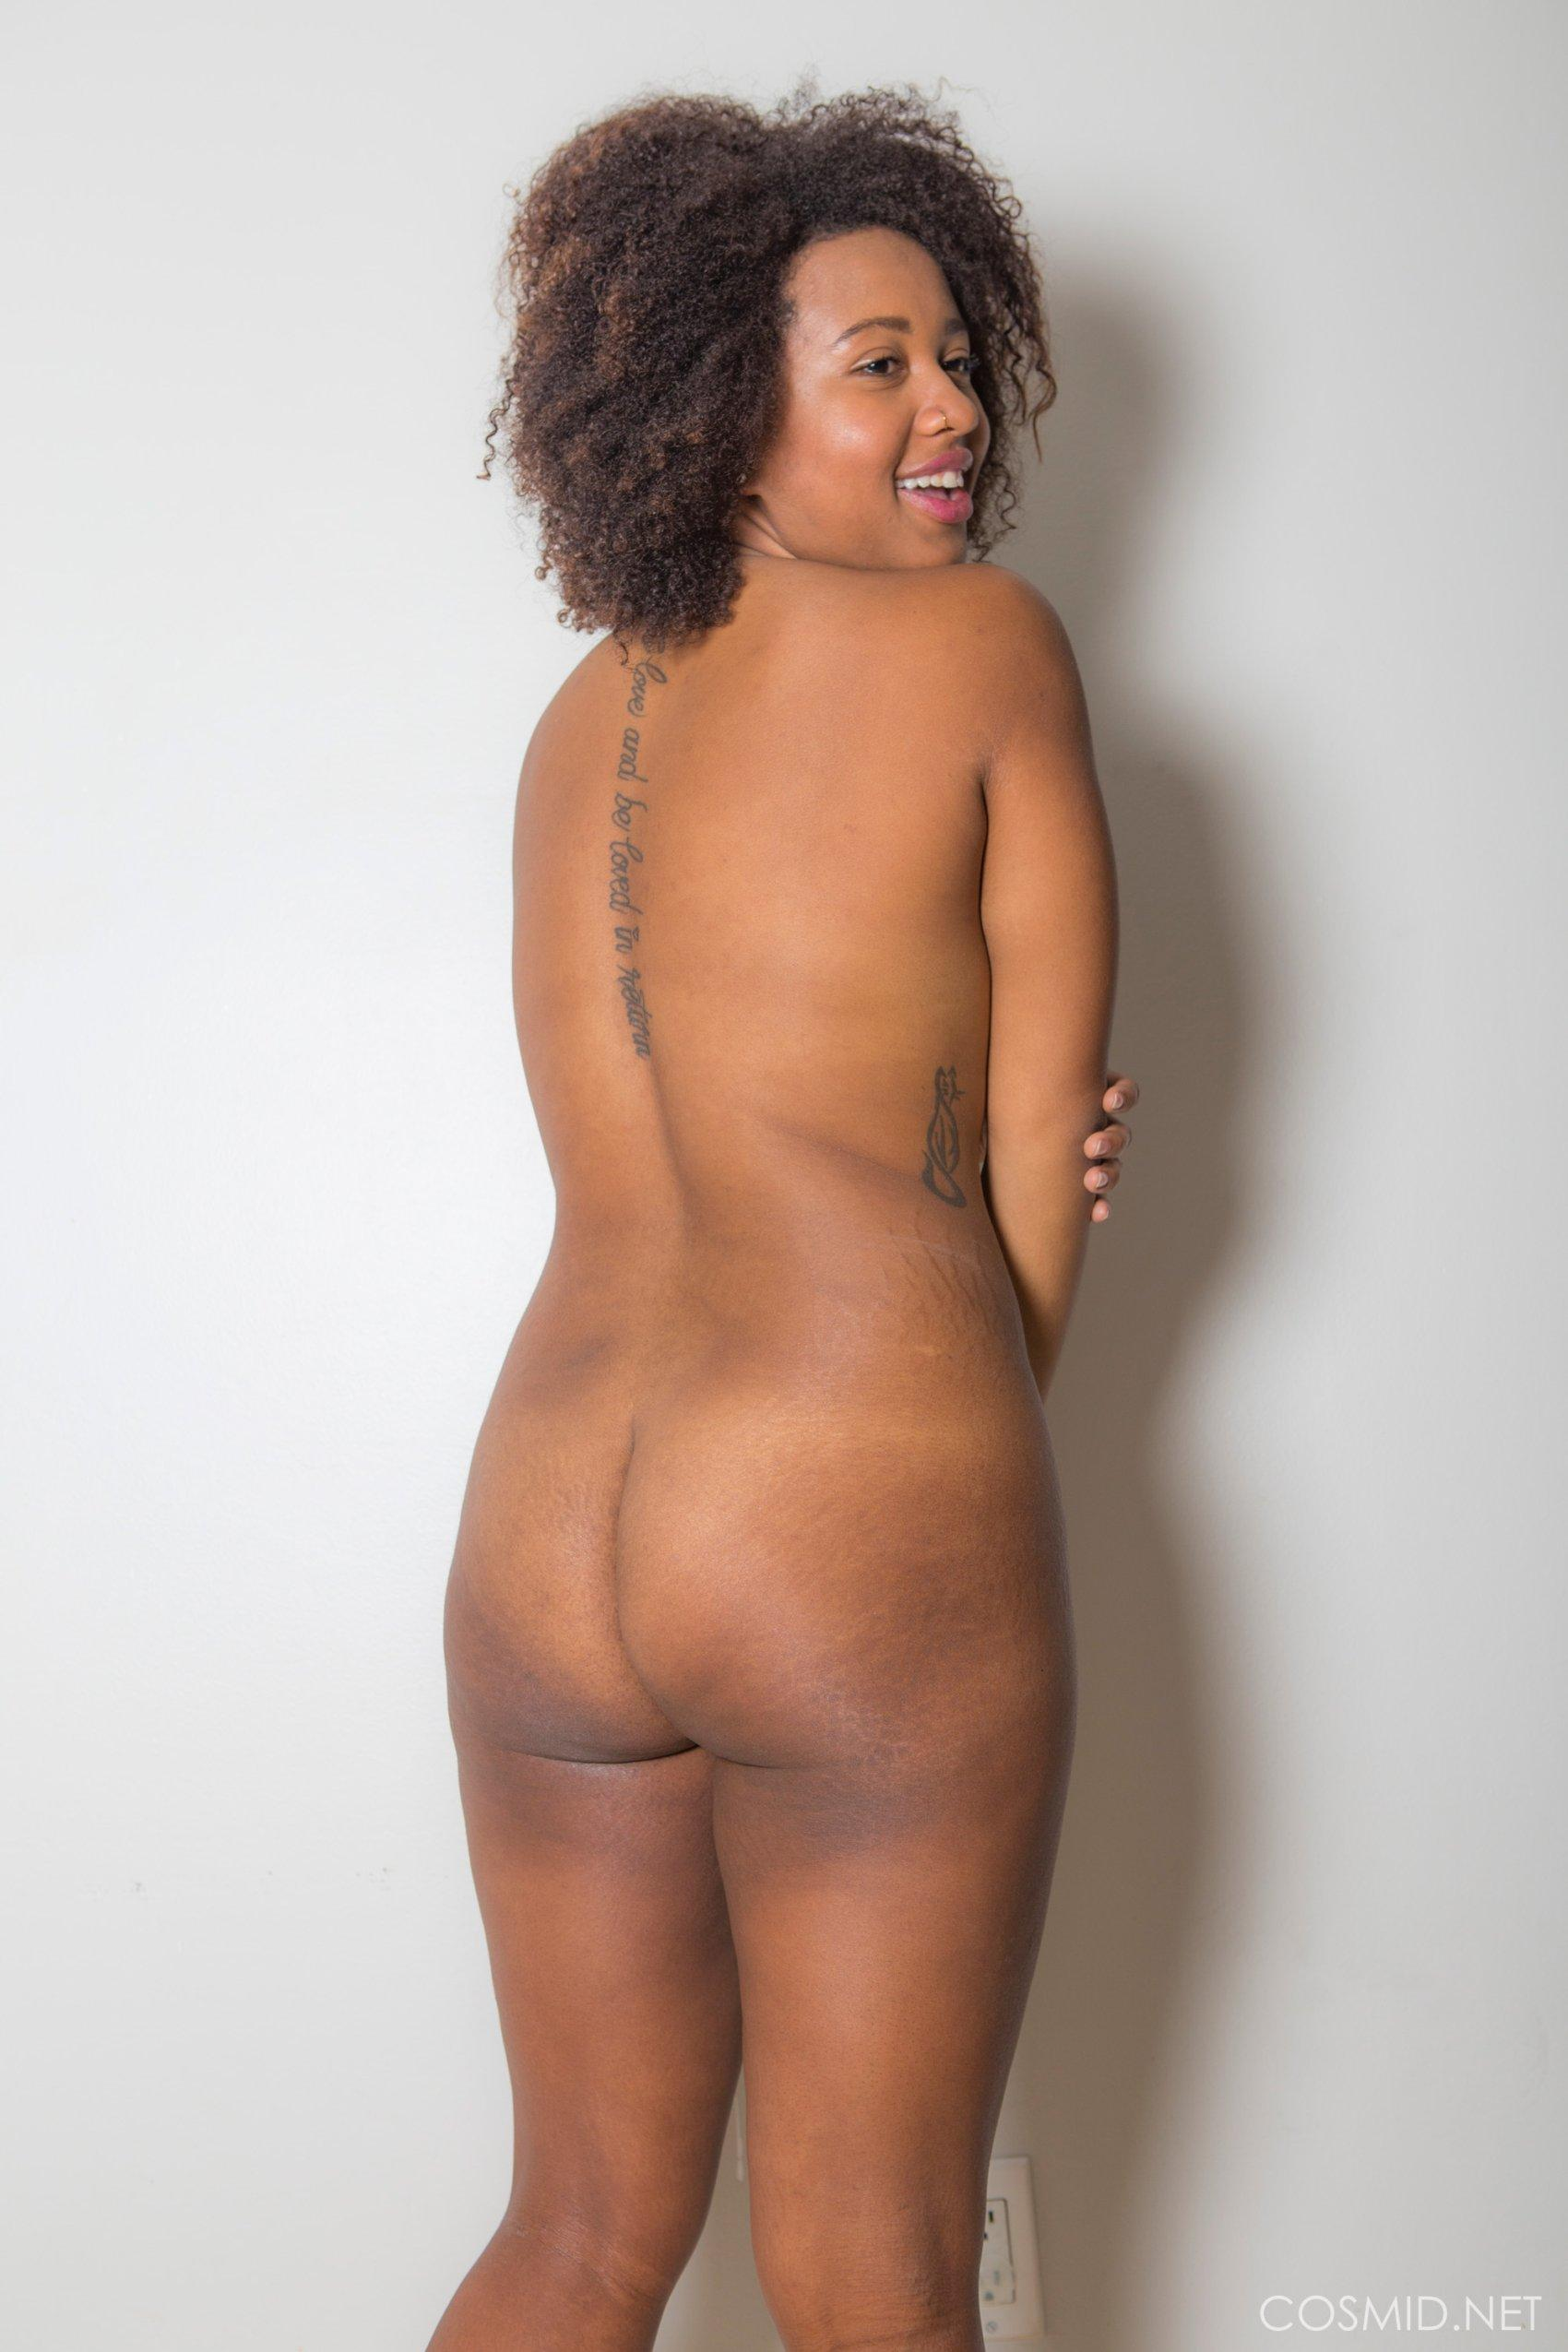 Whitney williams nude